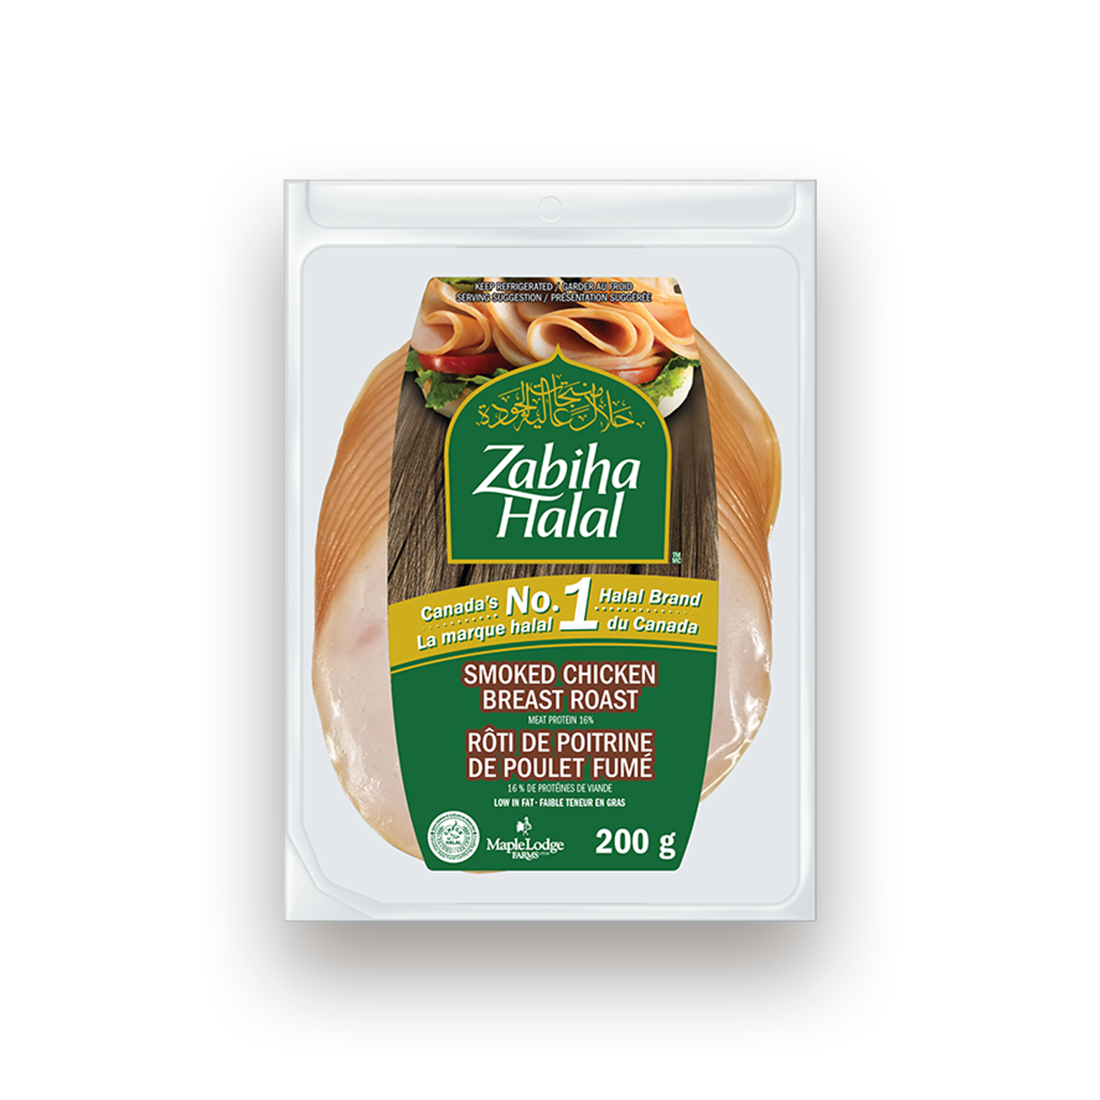 A package of Smoked Chicken Breast Deli